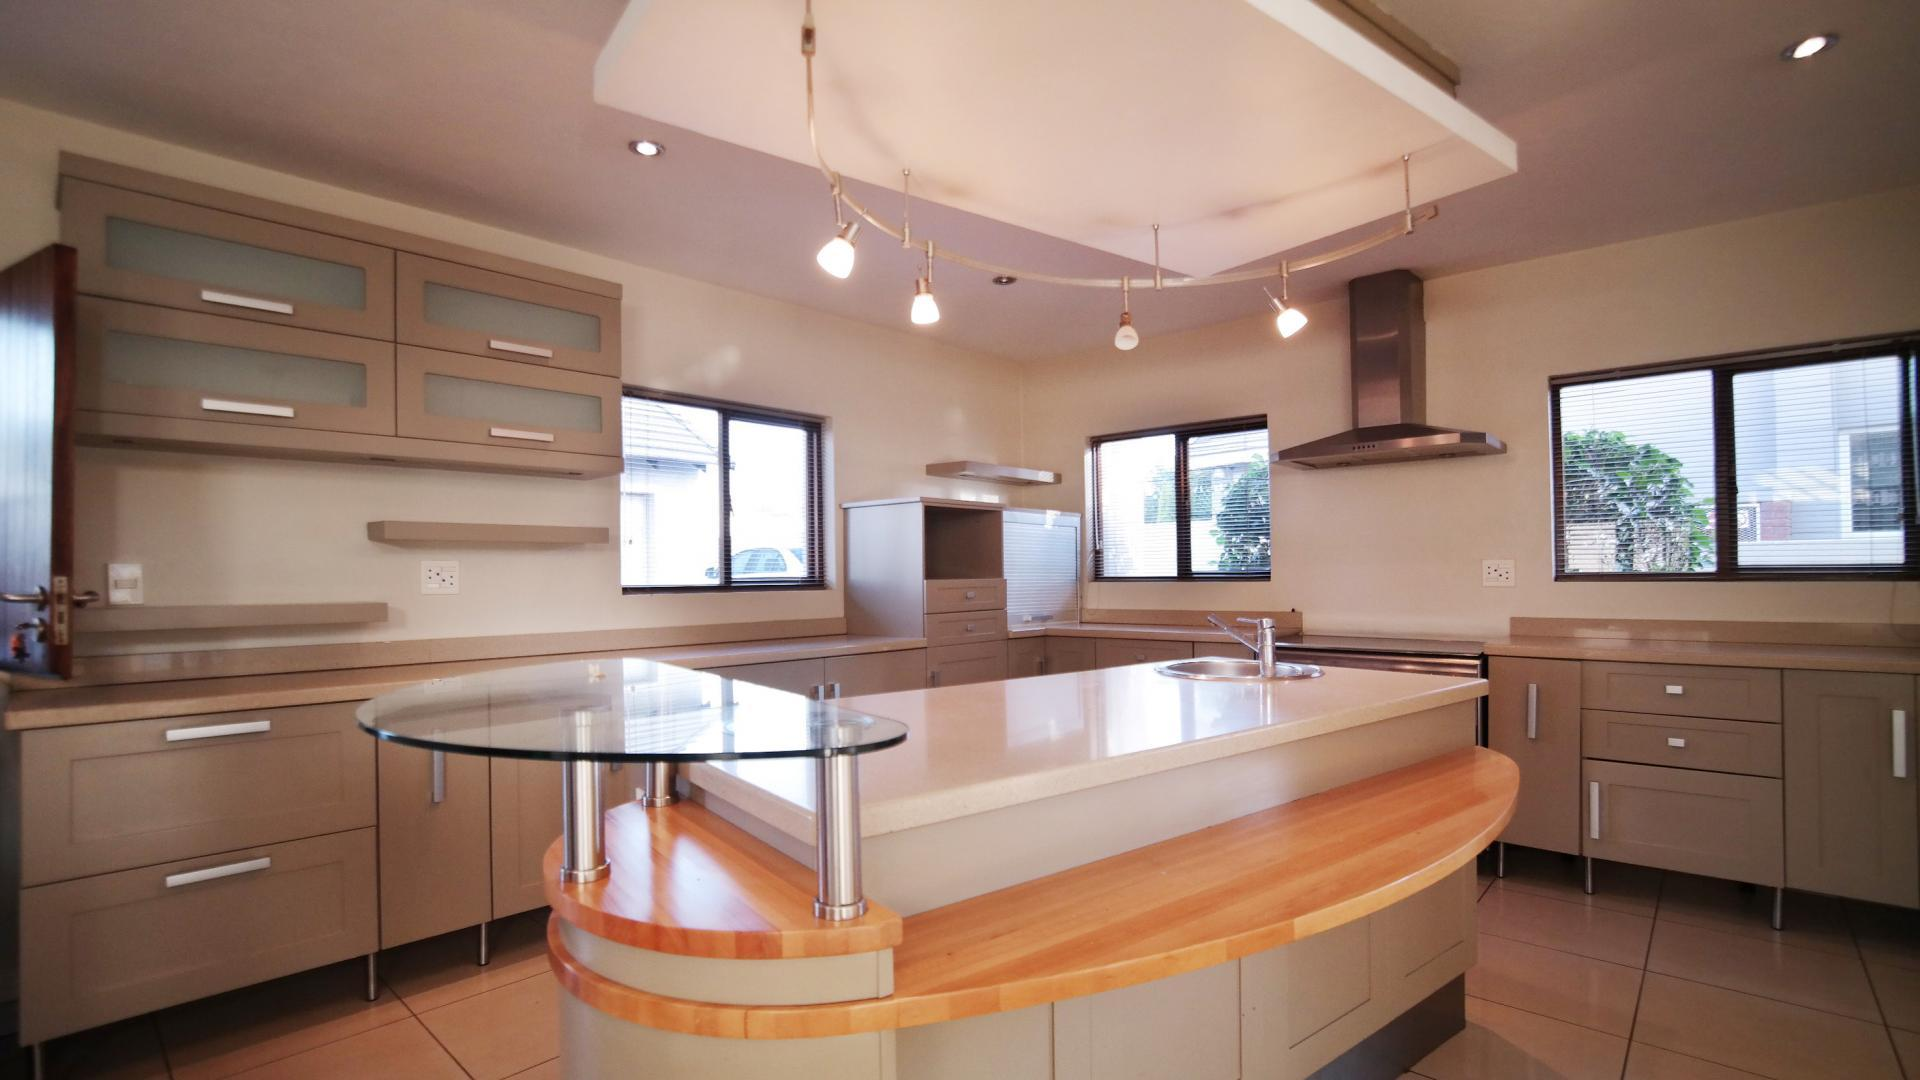 4 bedroom house for sale and to rent for sale in woodlands for Kitchens gauteng